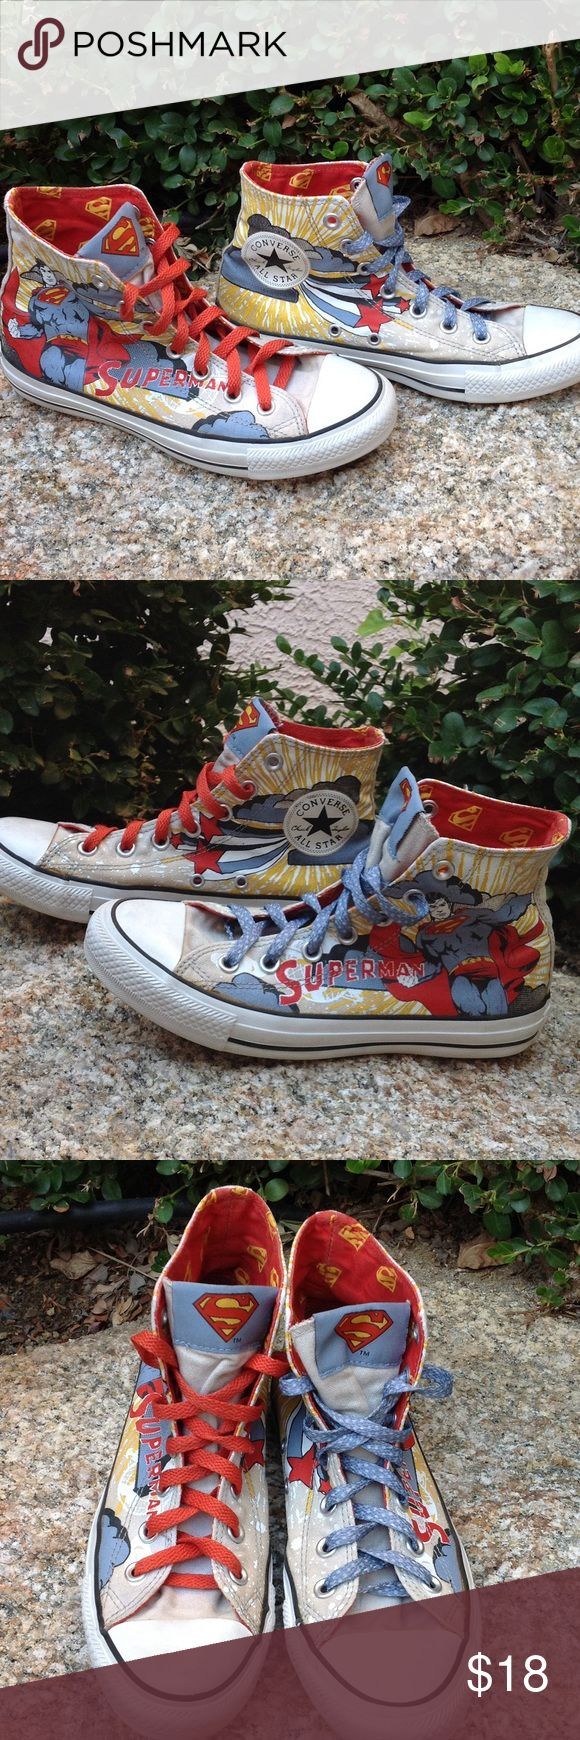 Converse High Tops Superman Edition These are cool! High top chucks that are Superman themed. One red & one blue shoe lace. The Superman logo is on the tongue of each shoe. These are gently used & in good condition. They're priced accordingly for wear. Size 5 men's/Size 7 woman's. Converse Shoes